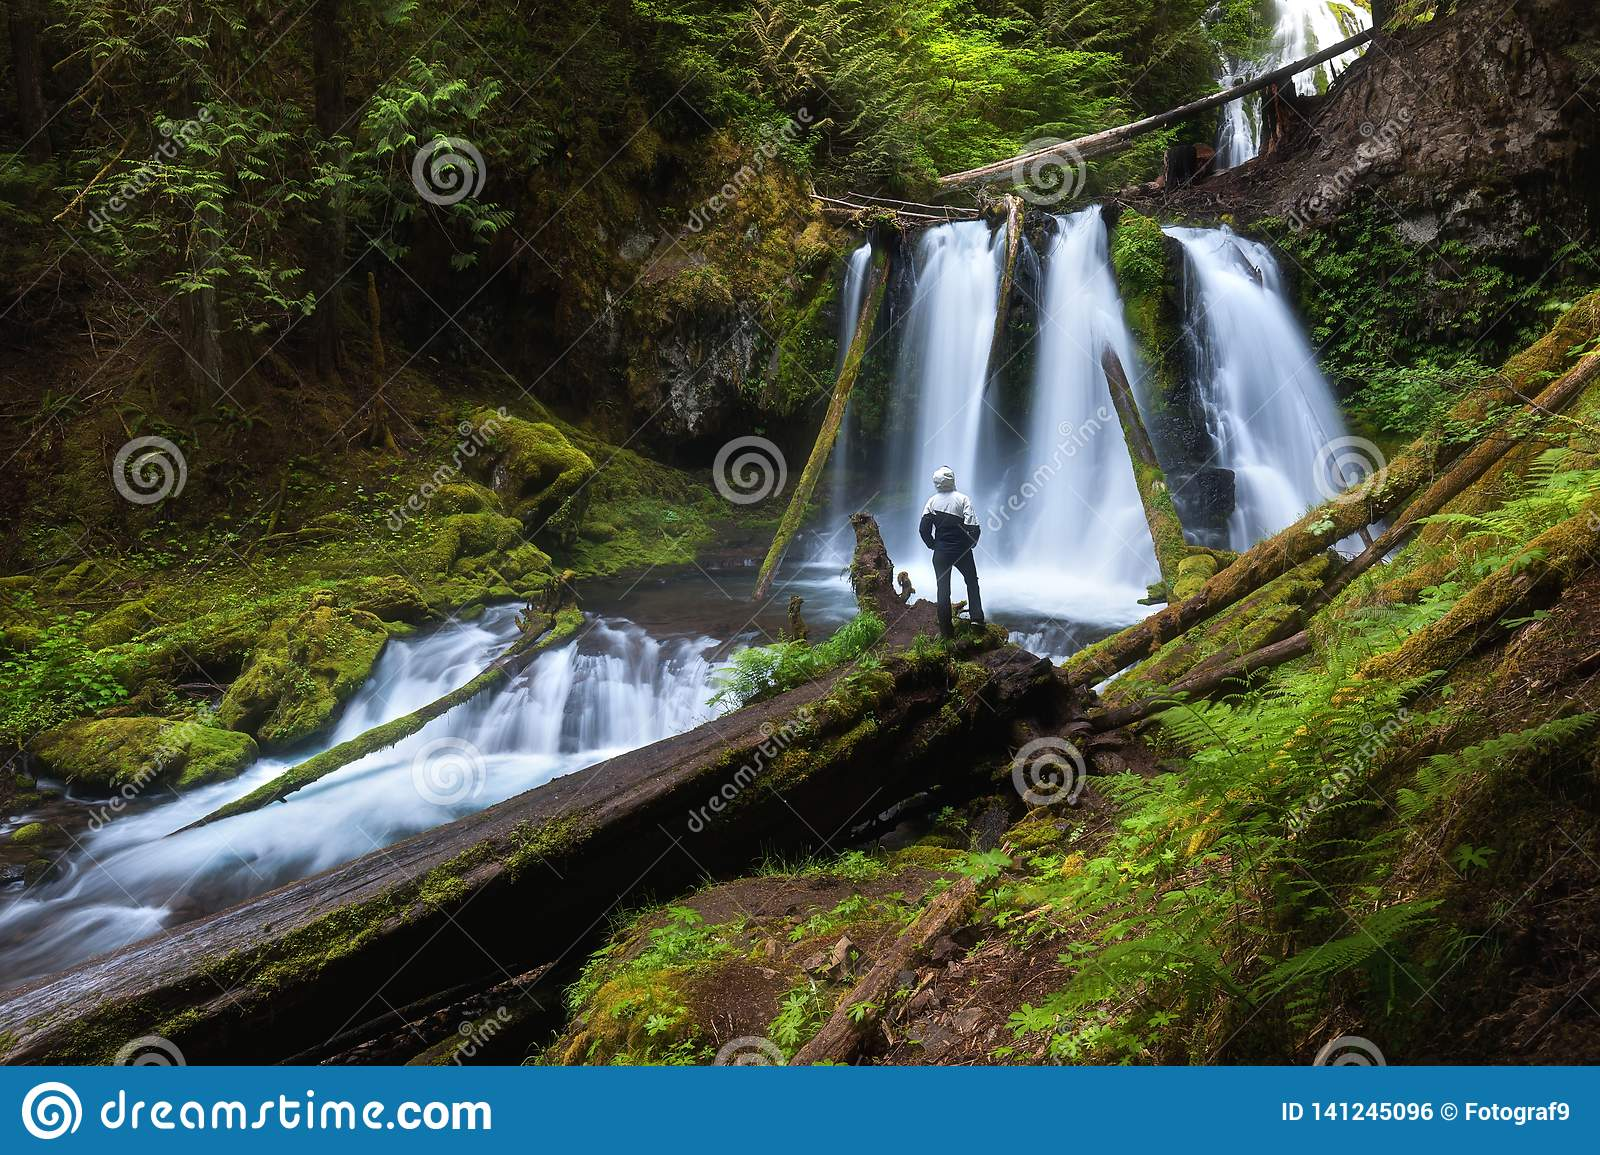 Young woman standing by a waterfall in Douglas County in the U.S. state of Oregon.[. The long exposure shots two degrees of water